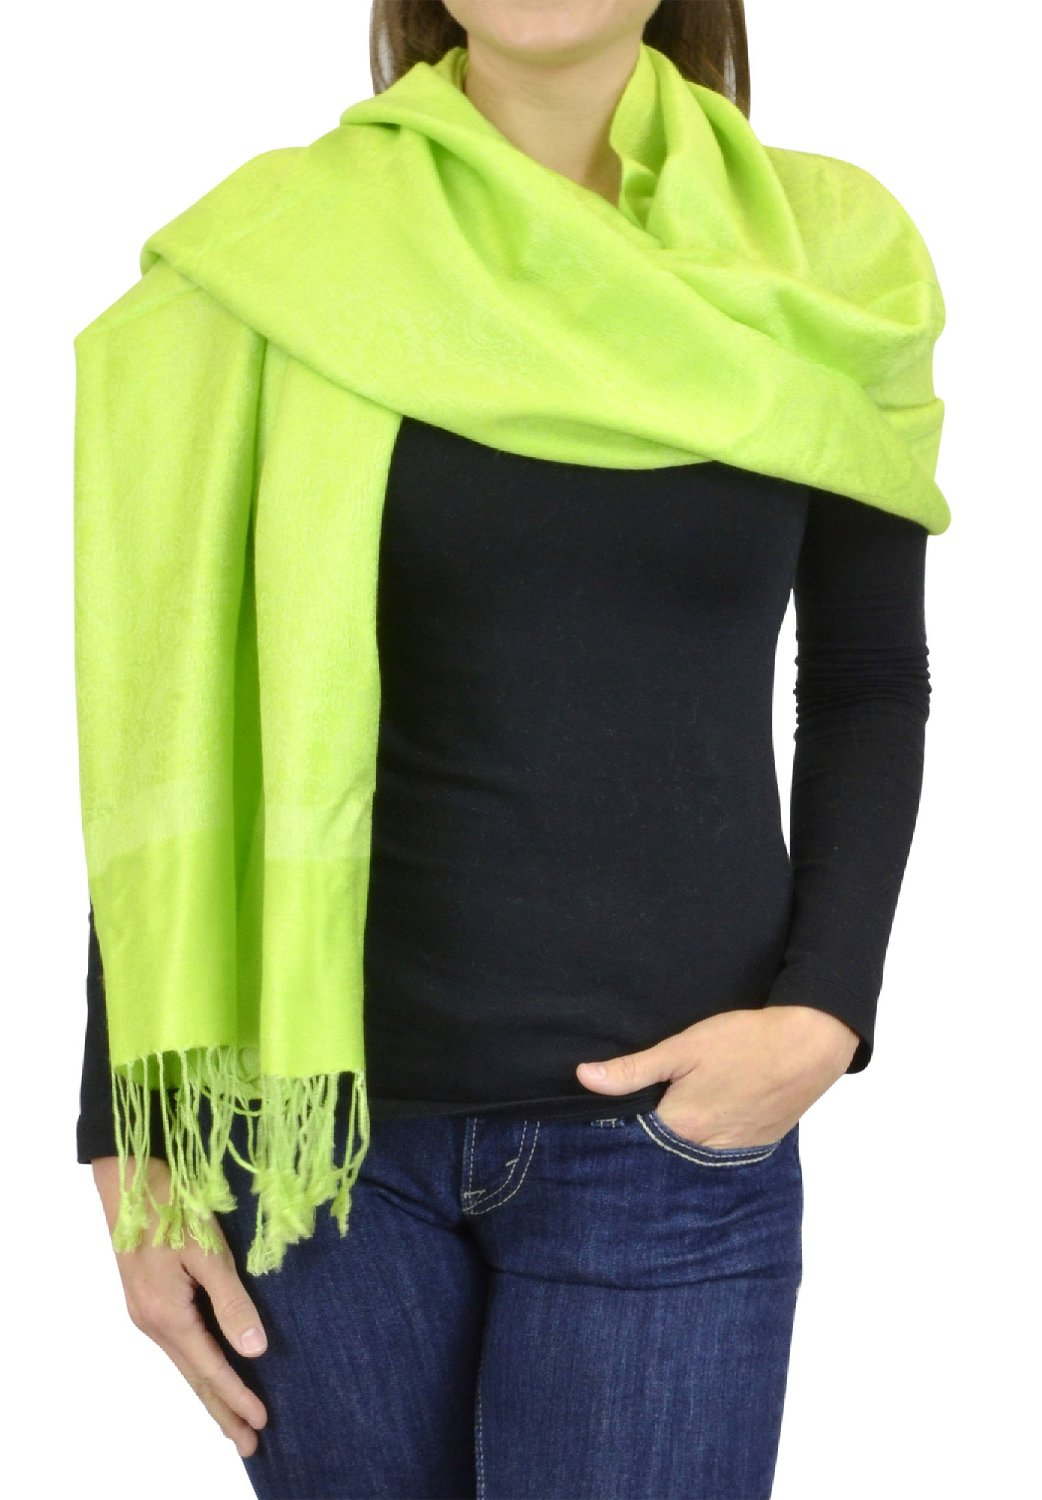 Belle Donne Women's Paisley Pashmina Shawl Wrap Scarf - Kelly Green